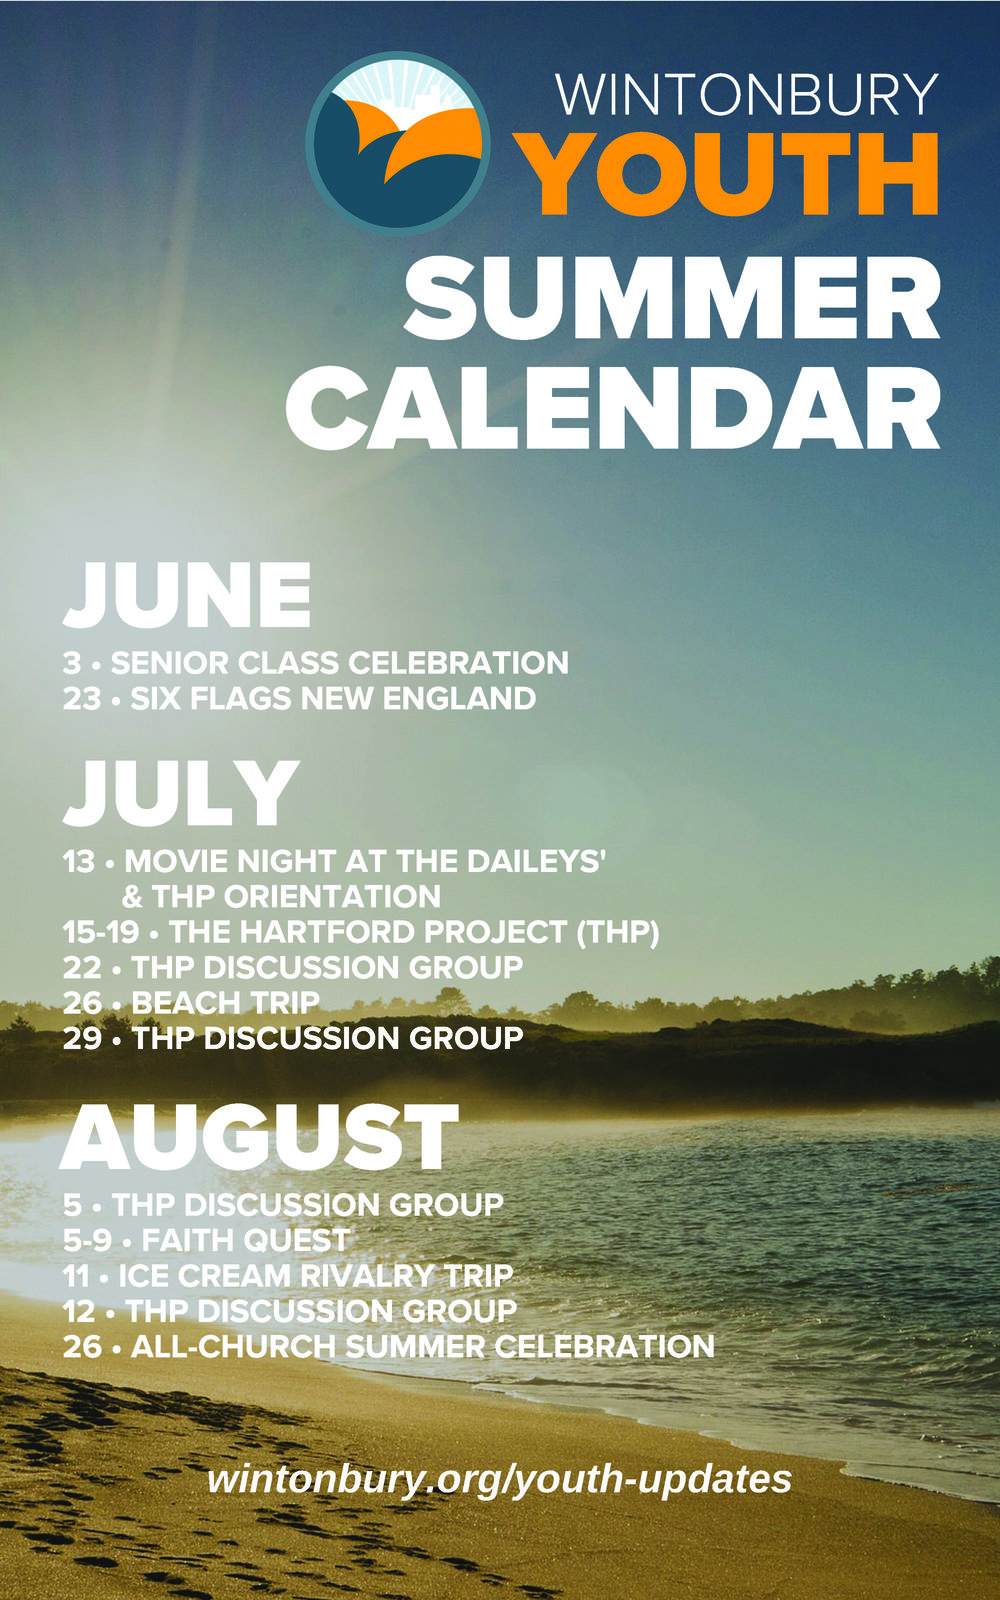 YOUTH Summer Calendar 2018.jpg